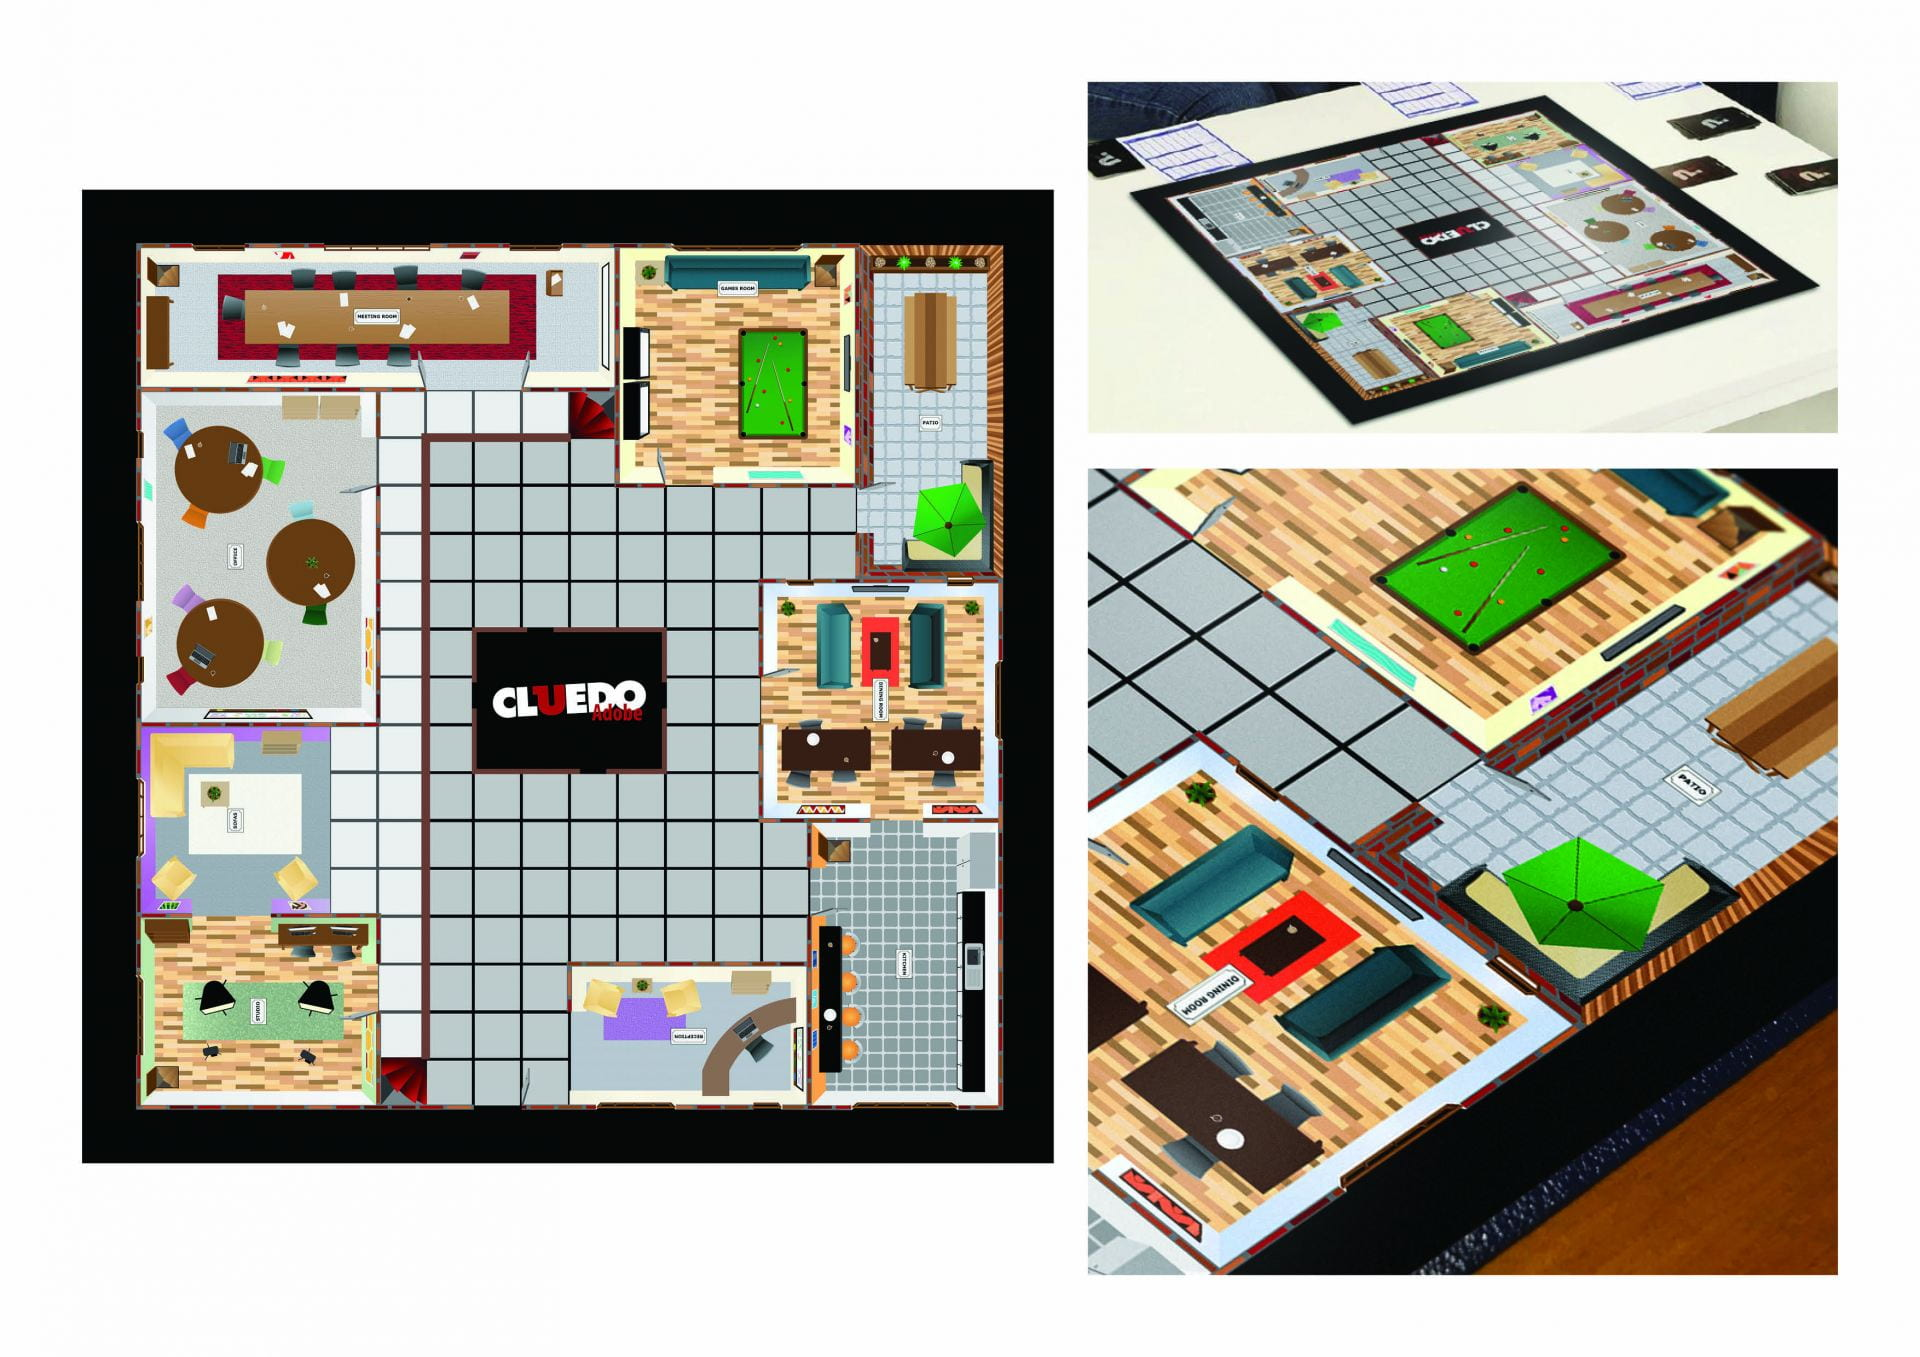 Adobe version of the board game Cluedo set in an office building environment.